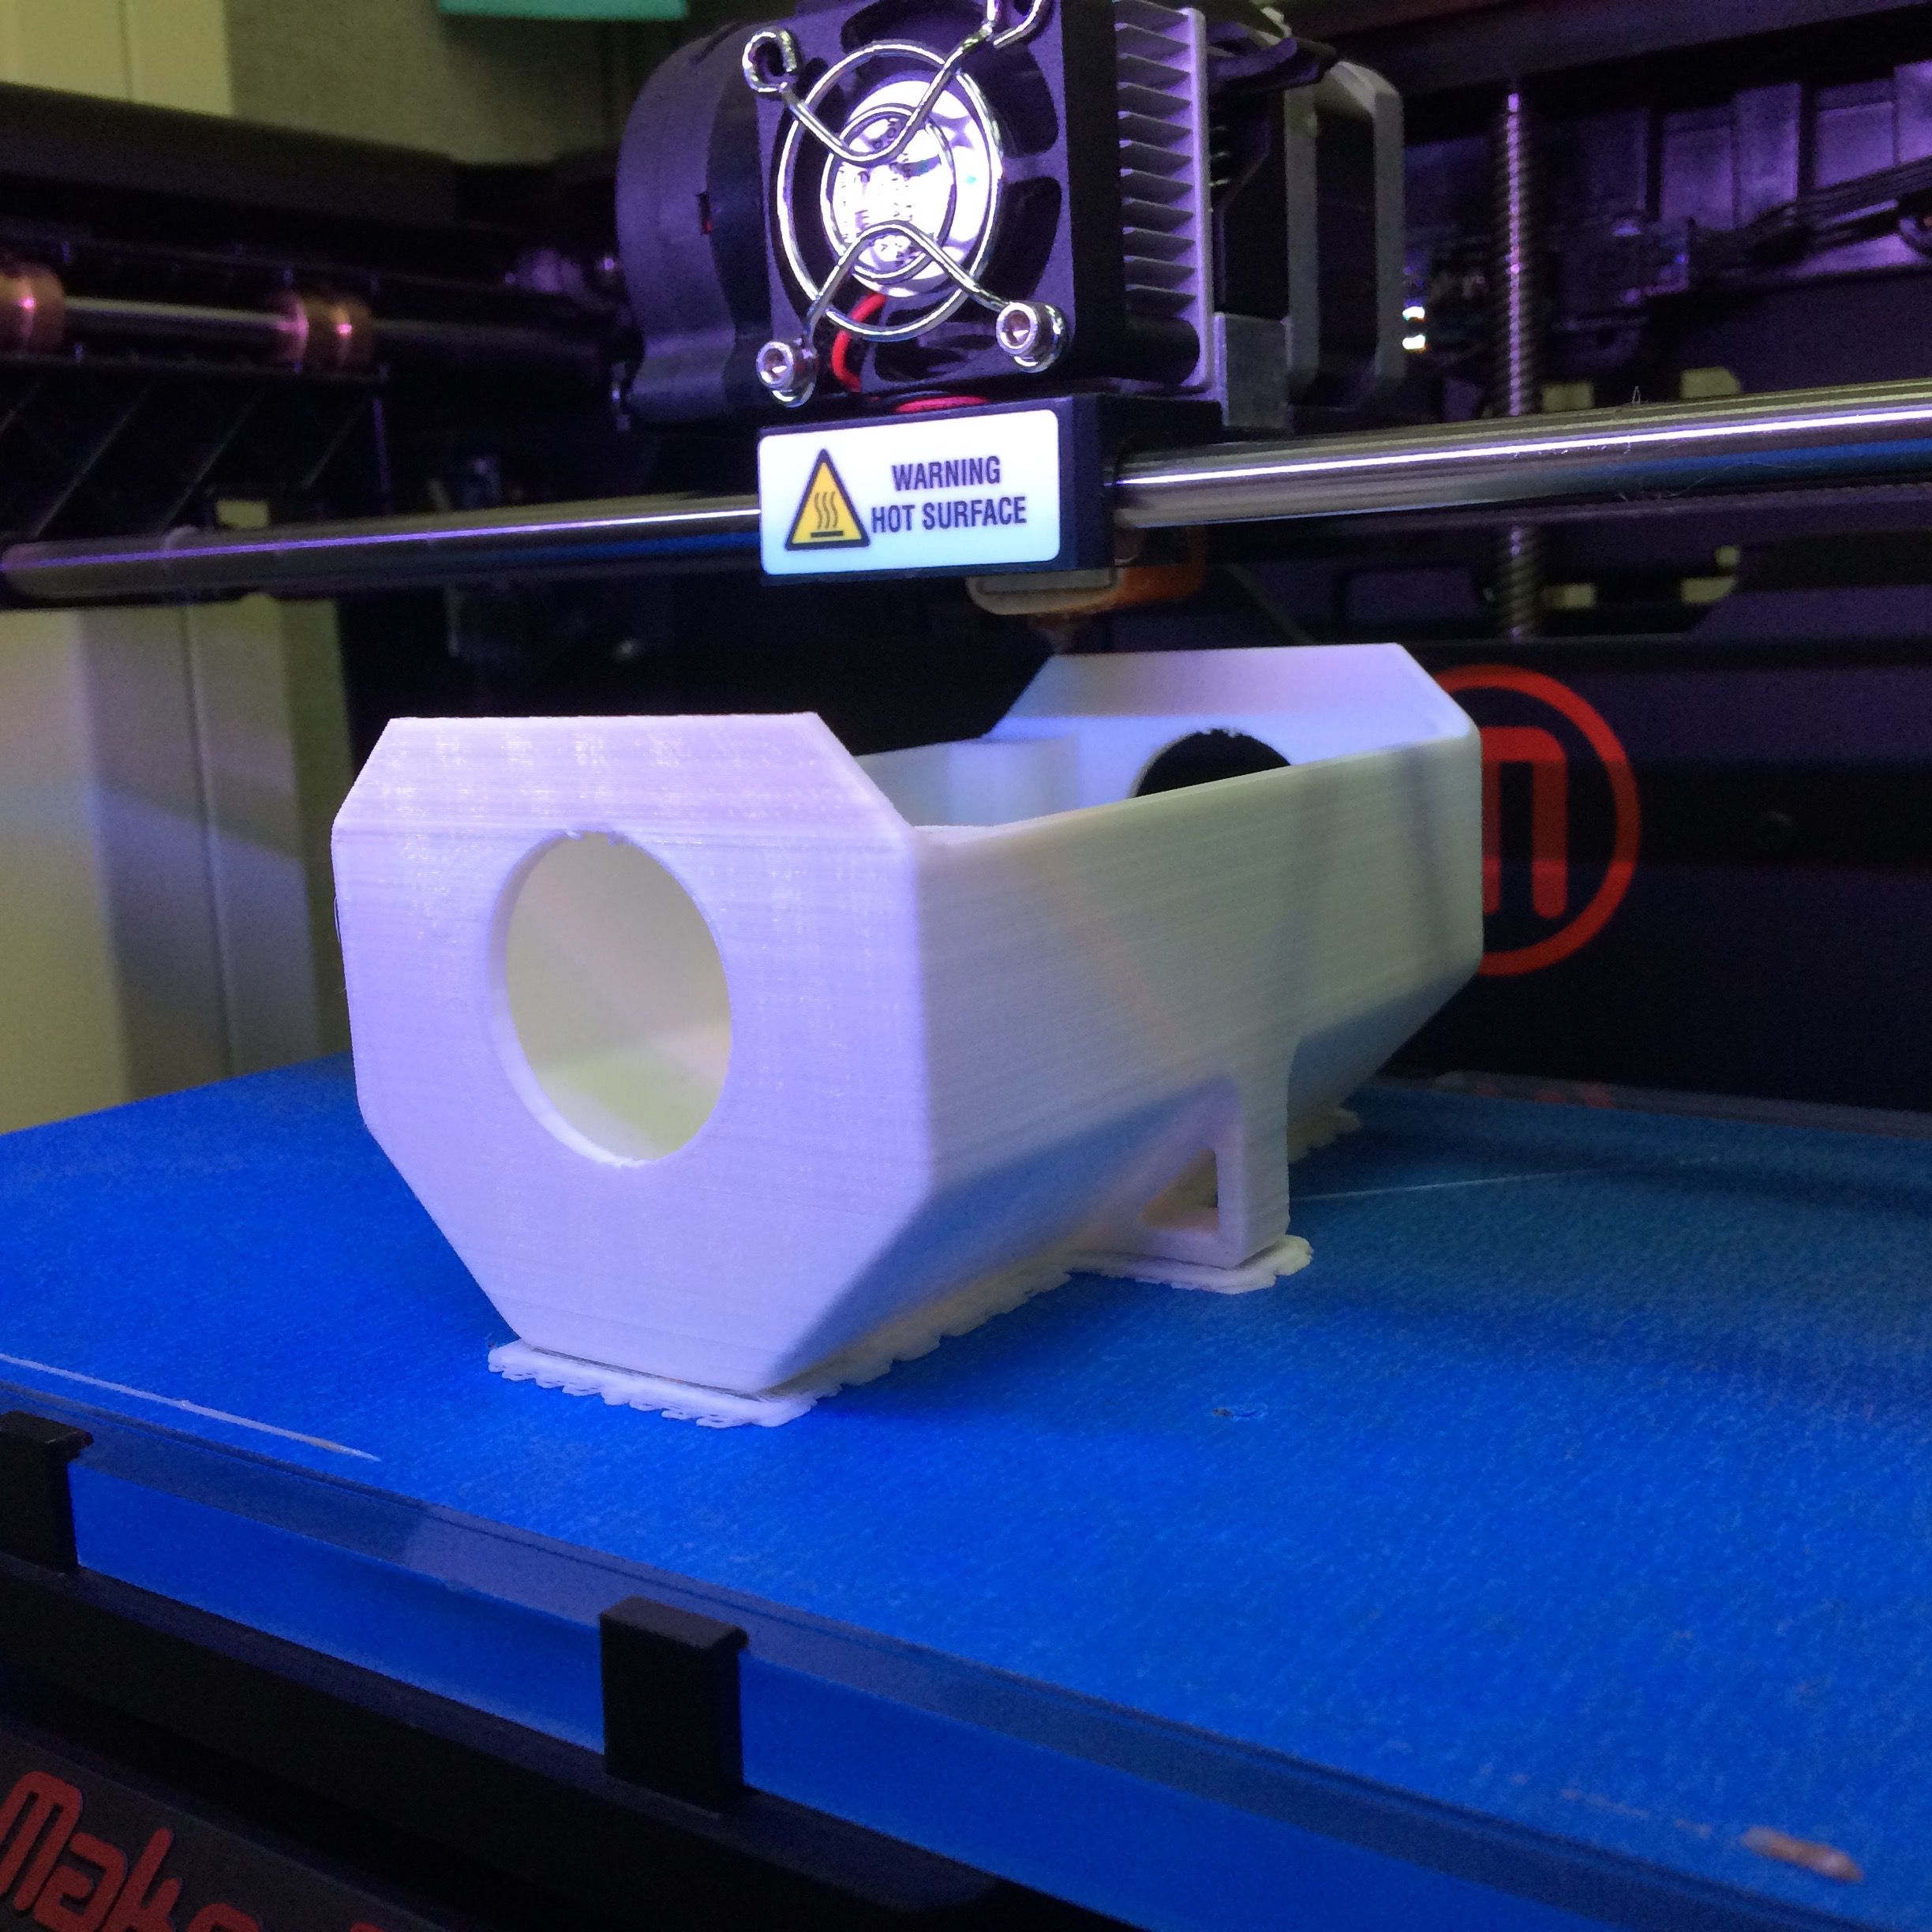 Printing an enclosure on a Makerbot Replicator 2